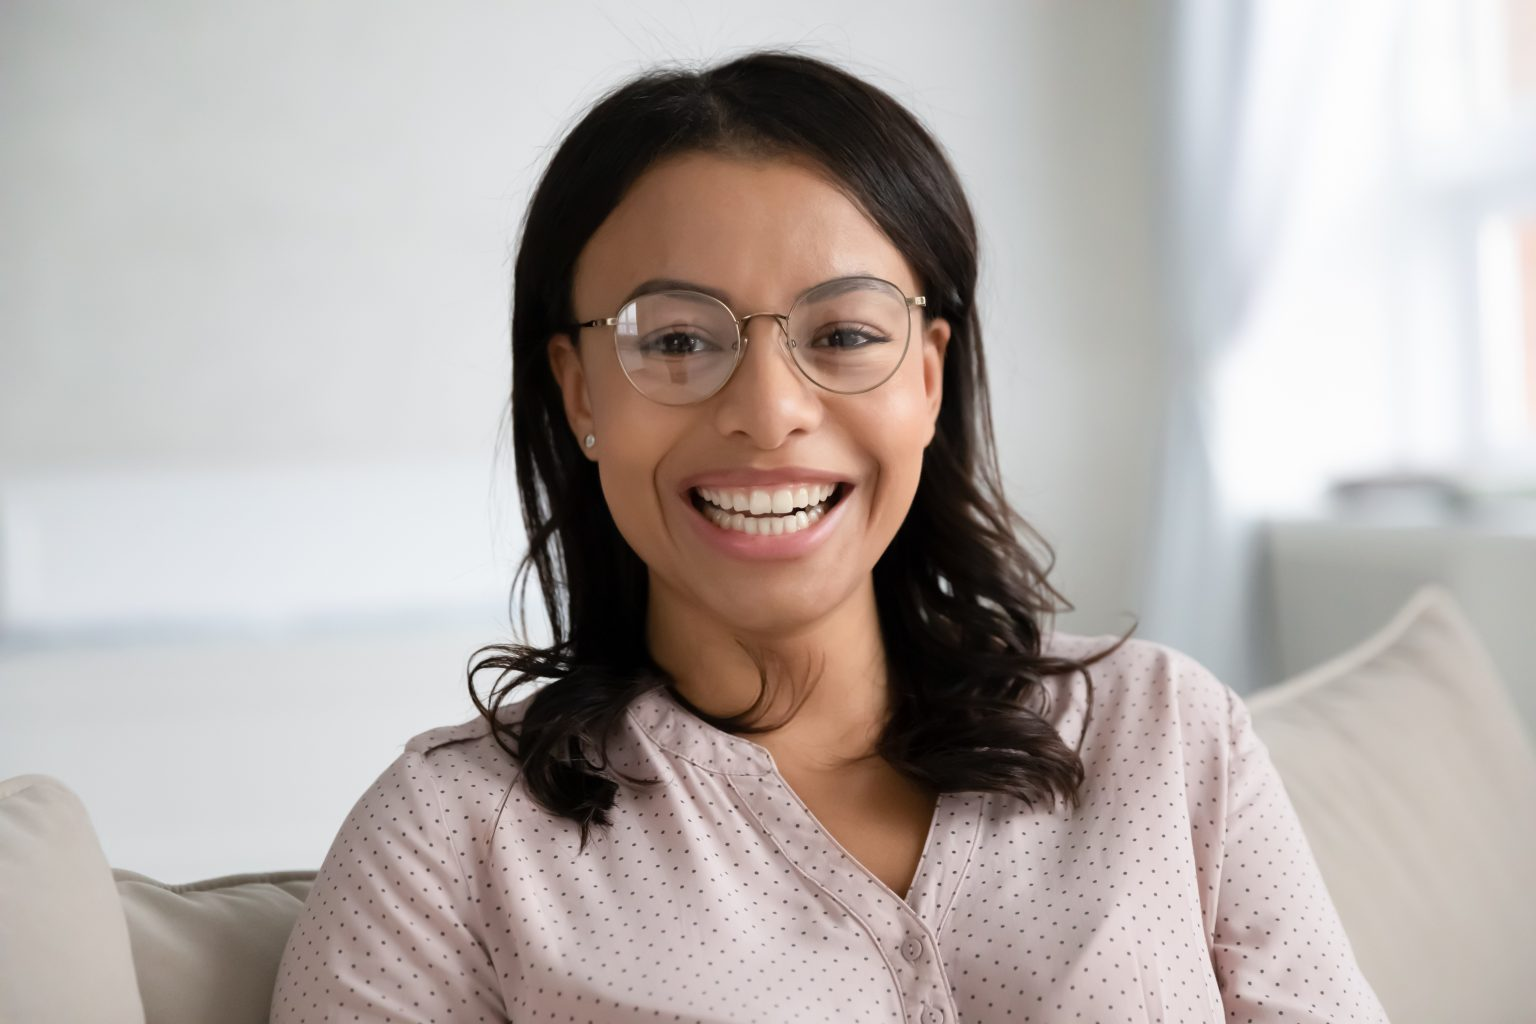 Headshot Portrait Of Biracial Woman Relax On Couch